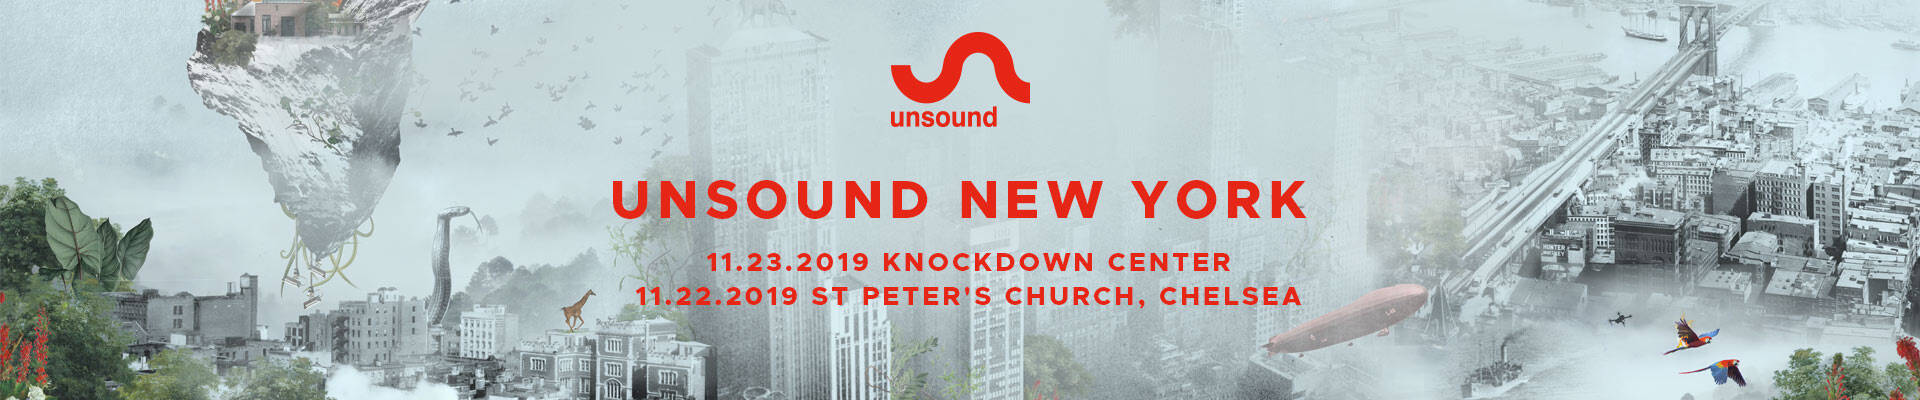 Unsound New York Returns With Two-Day Event